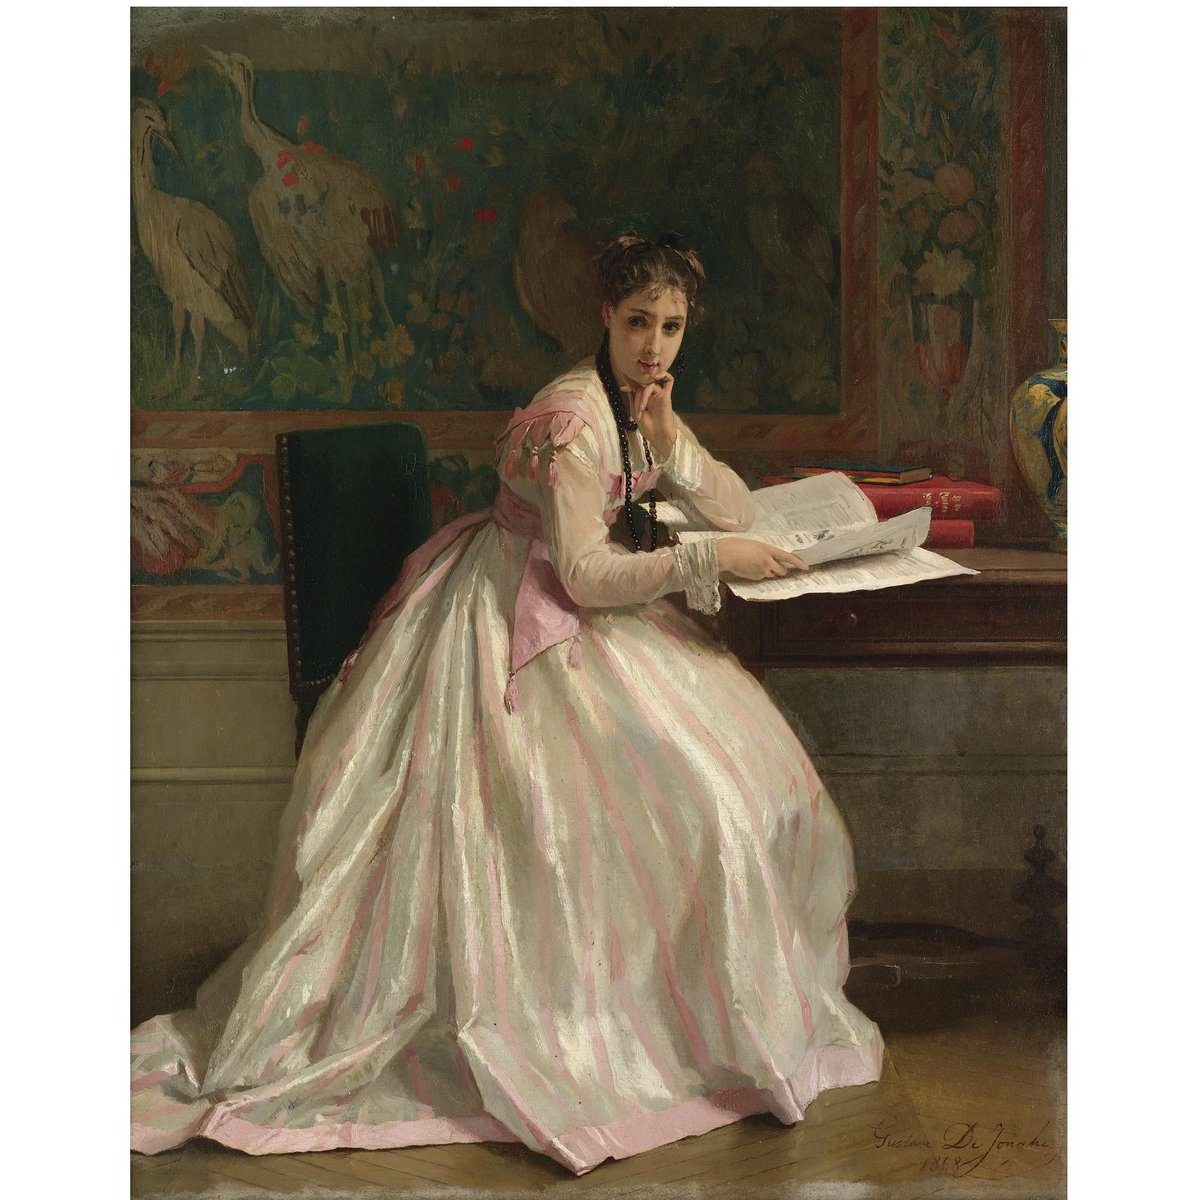 Fill your paper with the breathings of your heart. #wordsworth #poetry #wednesdaywisdom #amreading #bibliophile #whyIwrite #booklover<br>http://pic.twitter.com/mmmKwg5BHF